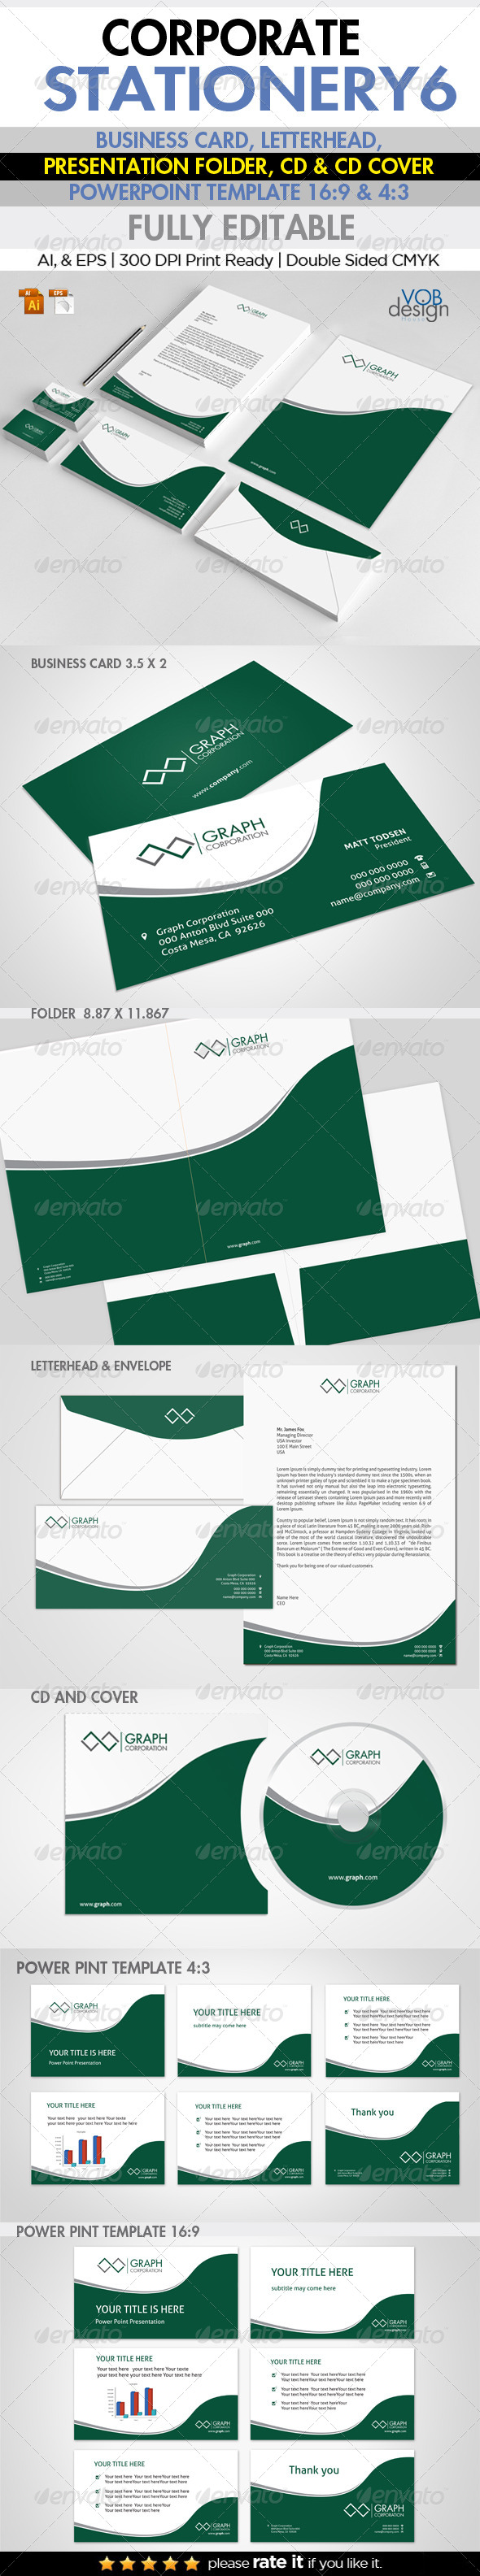 Corporate Stationery 6